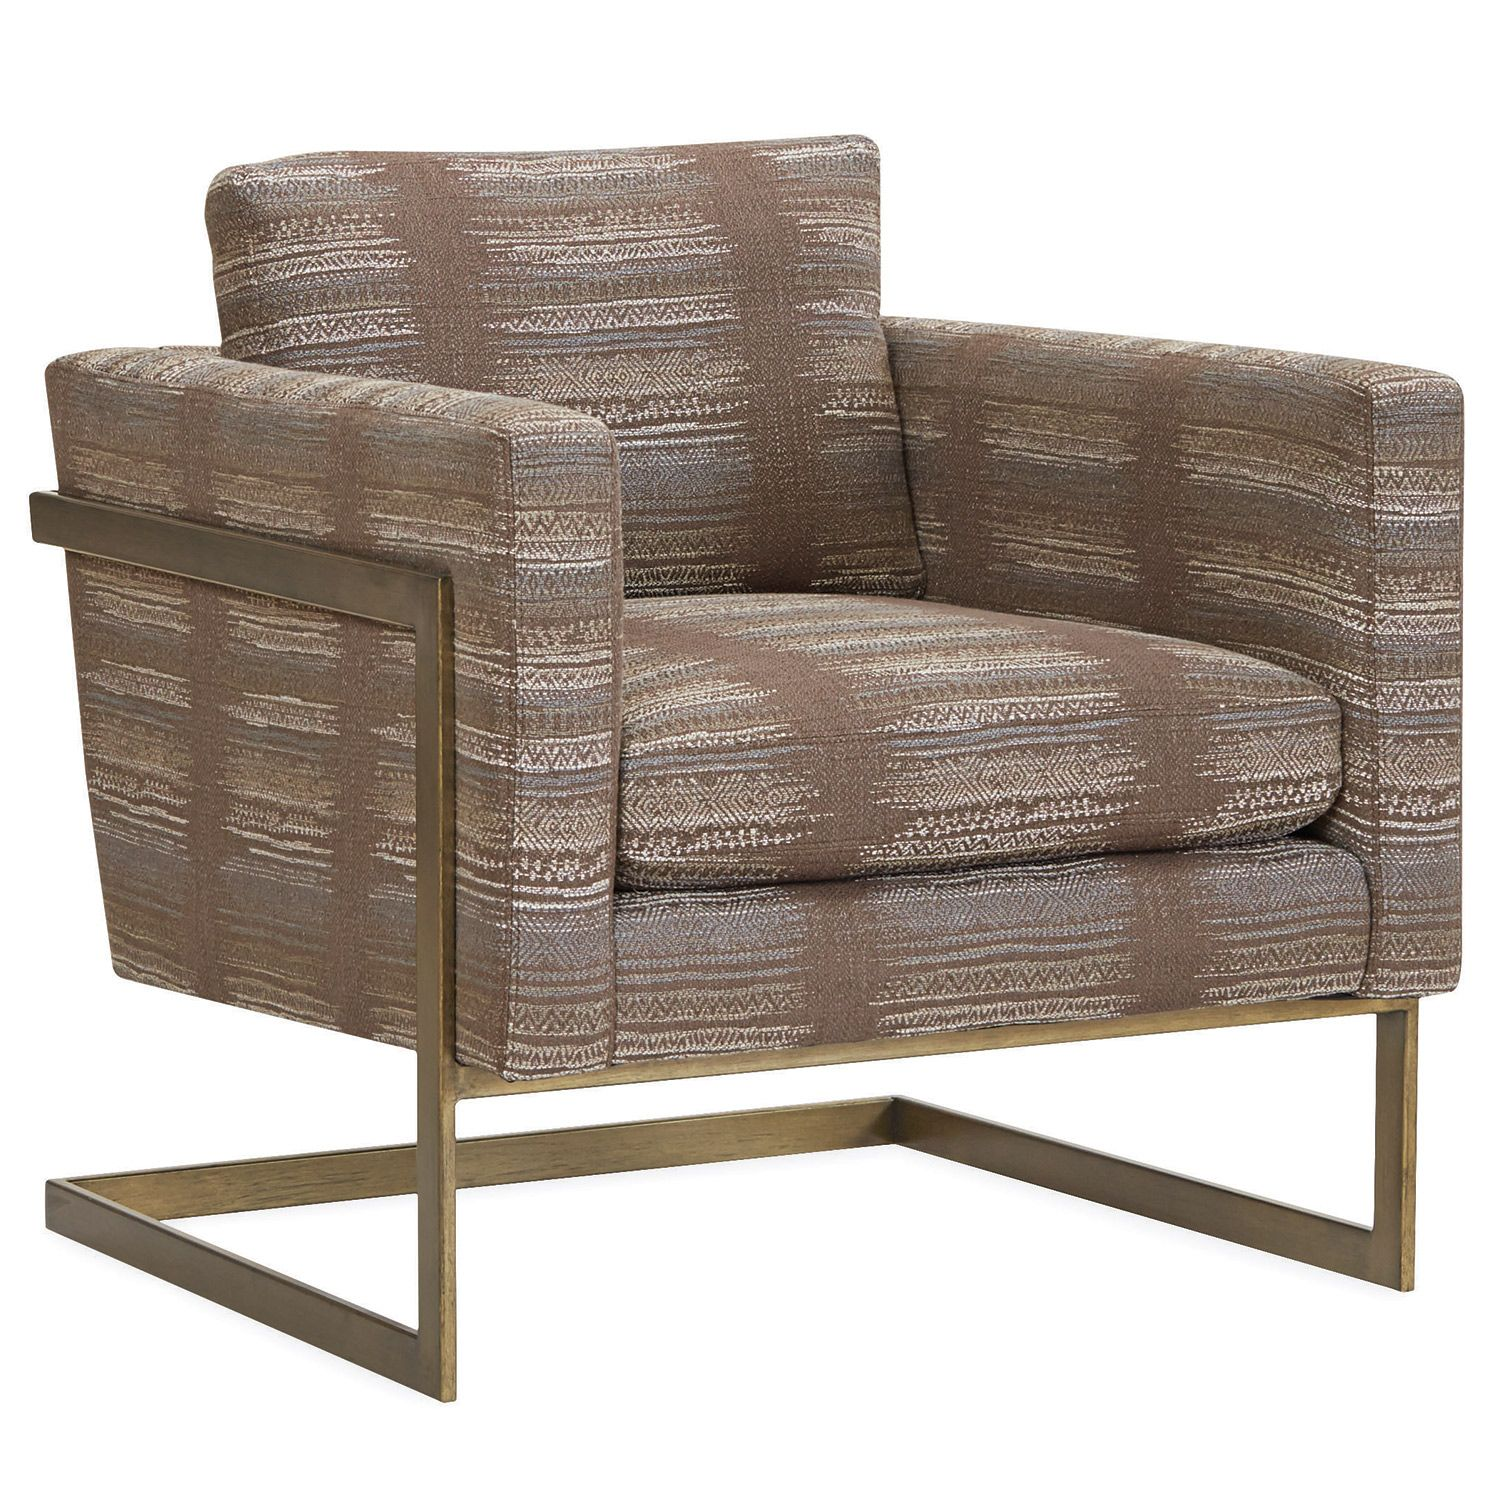 An Angular Frame Supports The Upholstered Cushions For Statement Making Eal Antique Br Topsch Detailing Soy Based Foam Cushion Wred